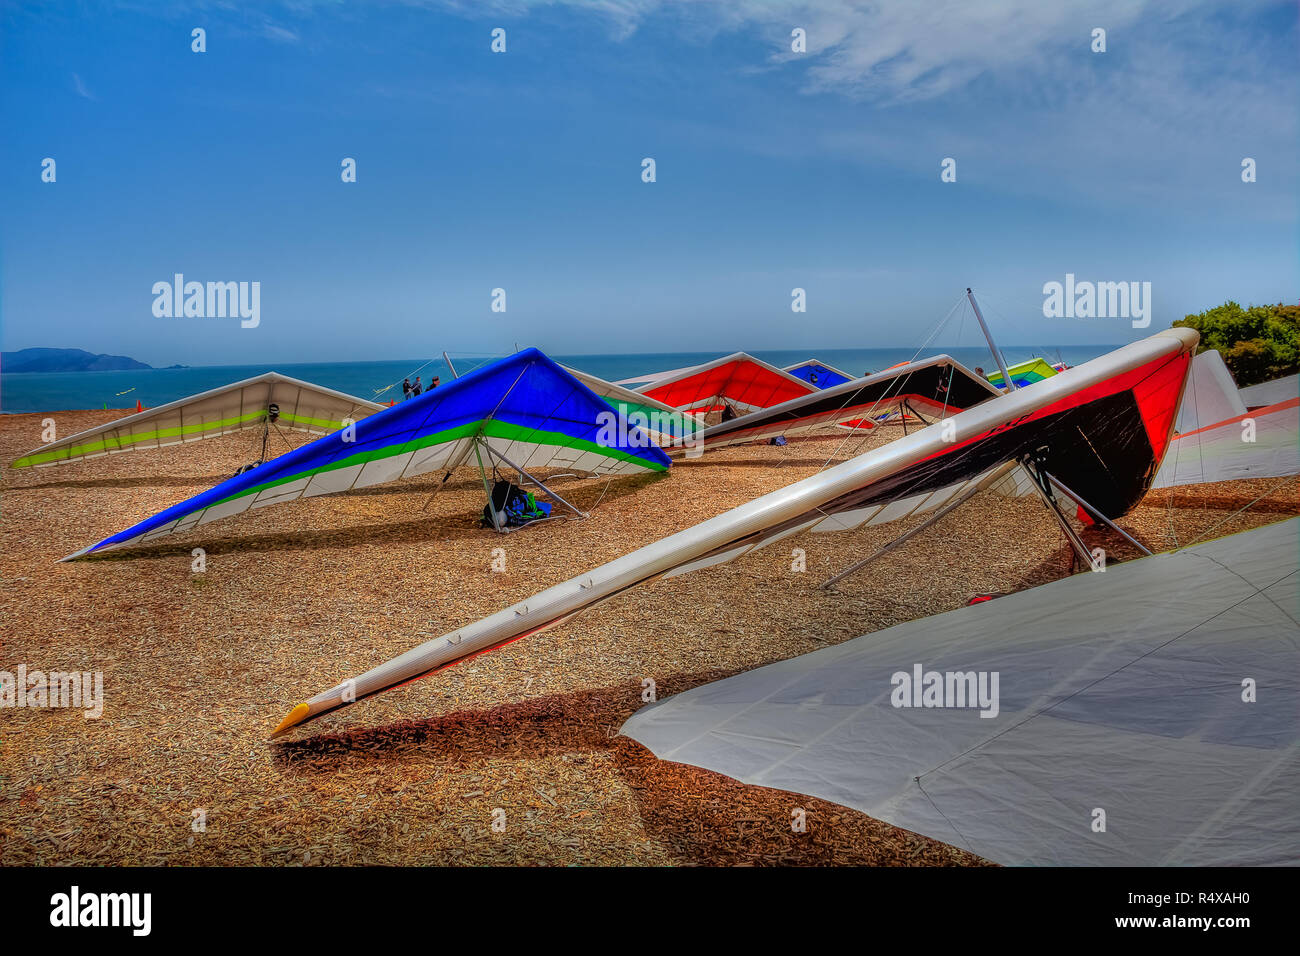 Colorful hang gliding wings lined up on top of a cliff at Fort Funston in San Francisco, one of the premier hang-gliding spots in the country Stock Photo